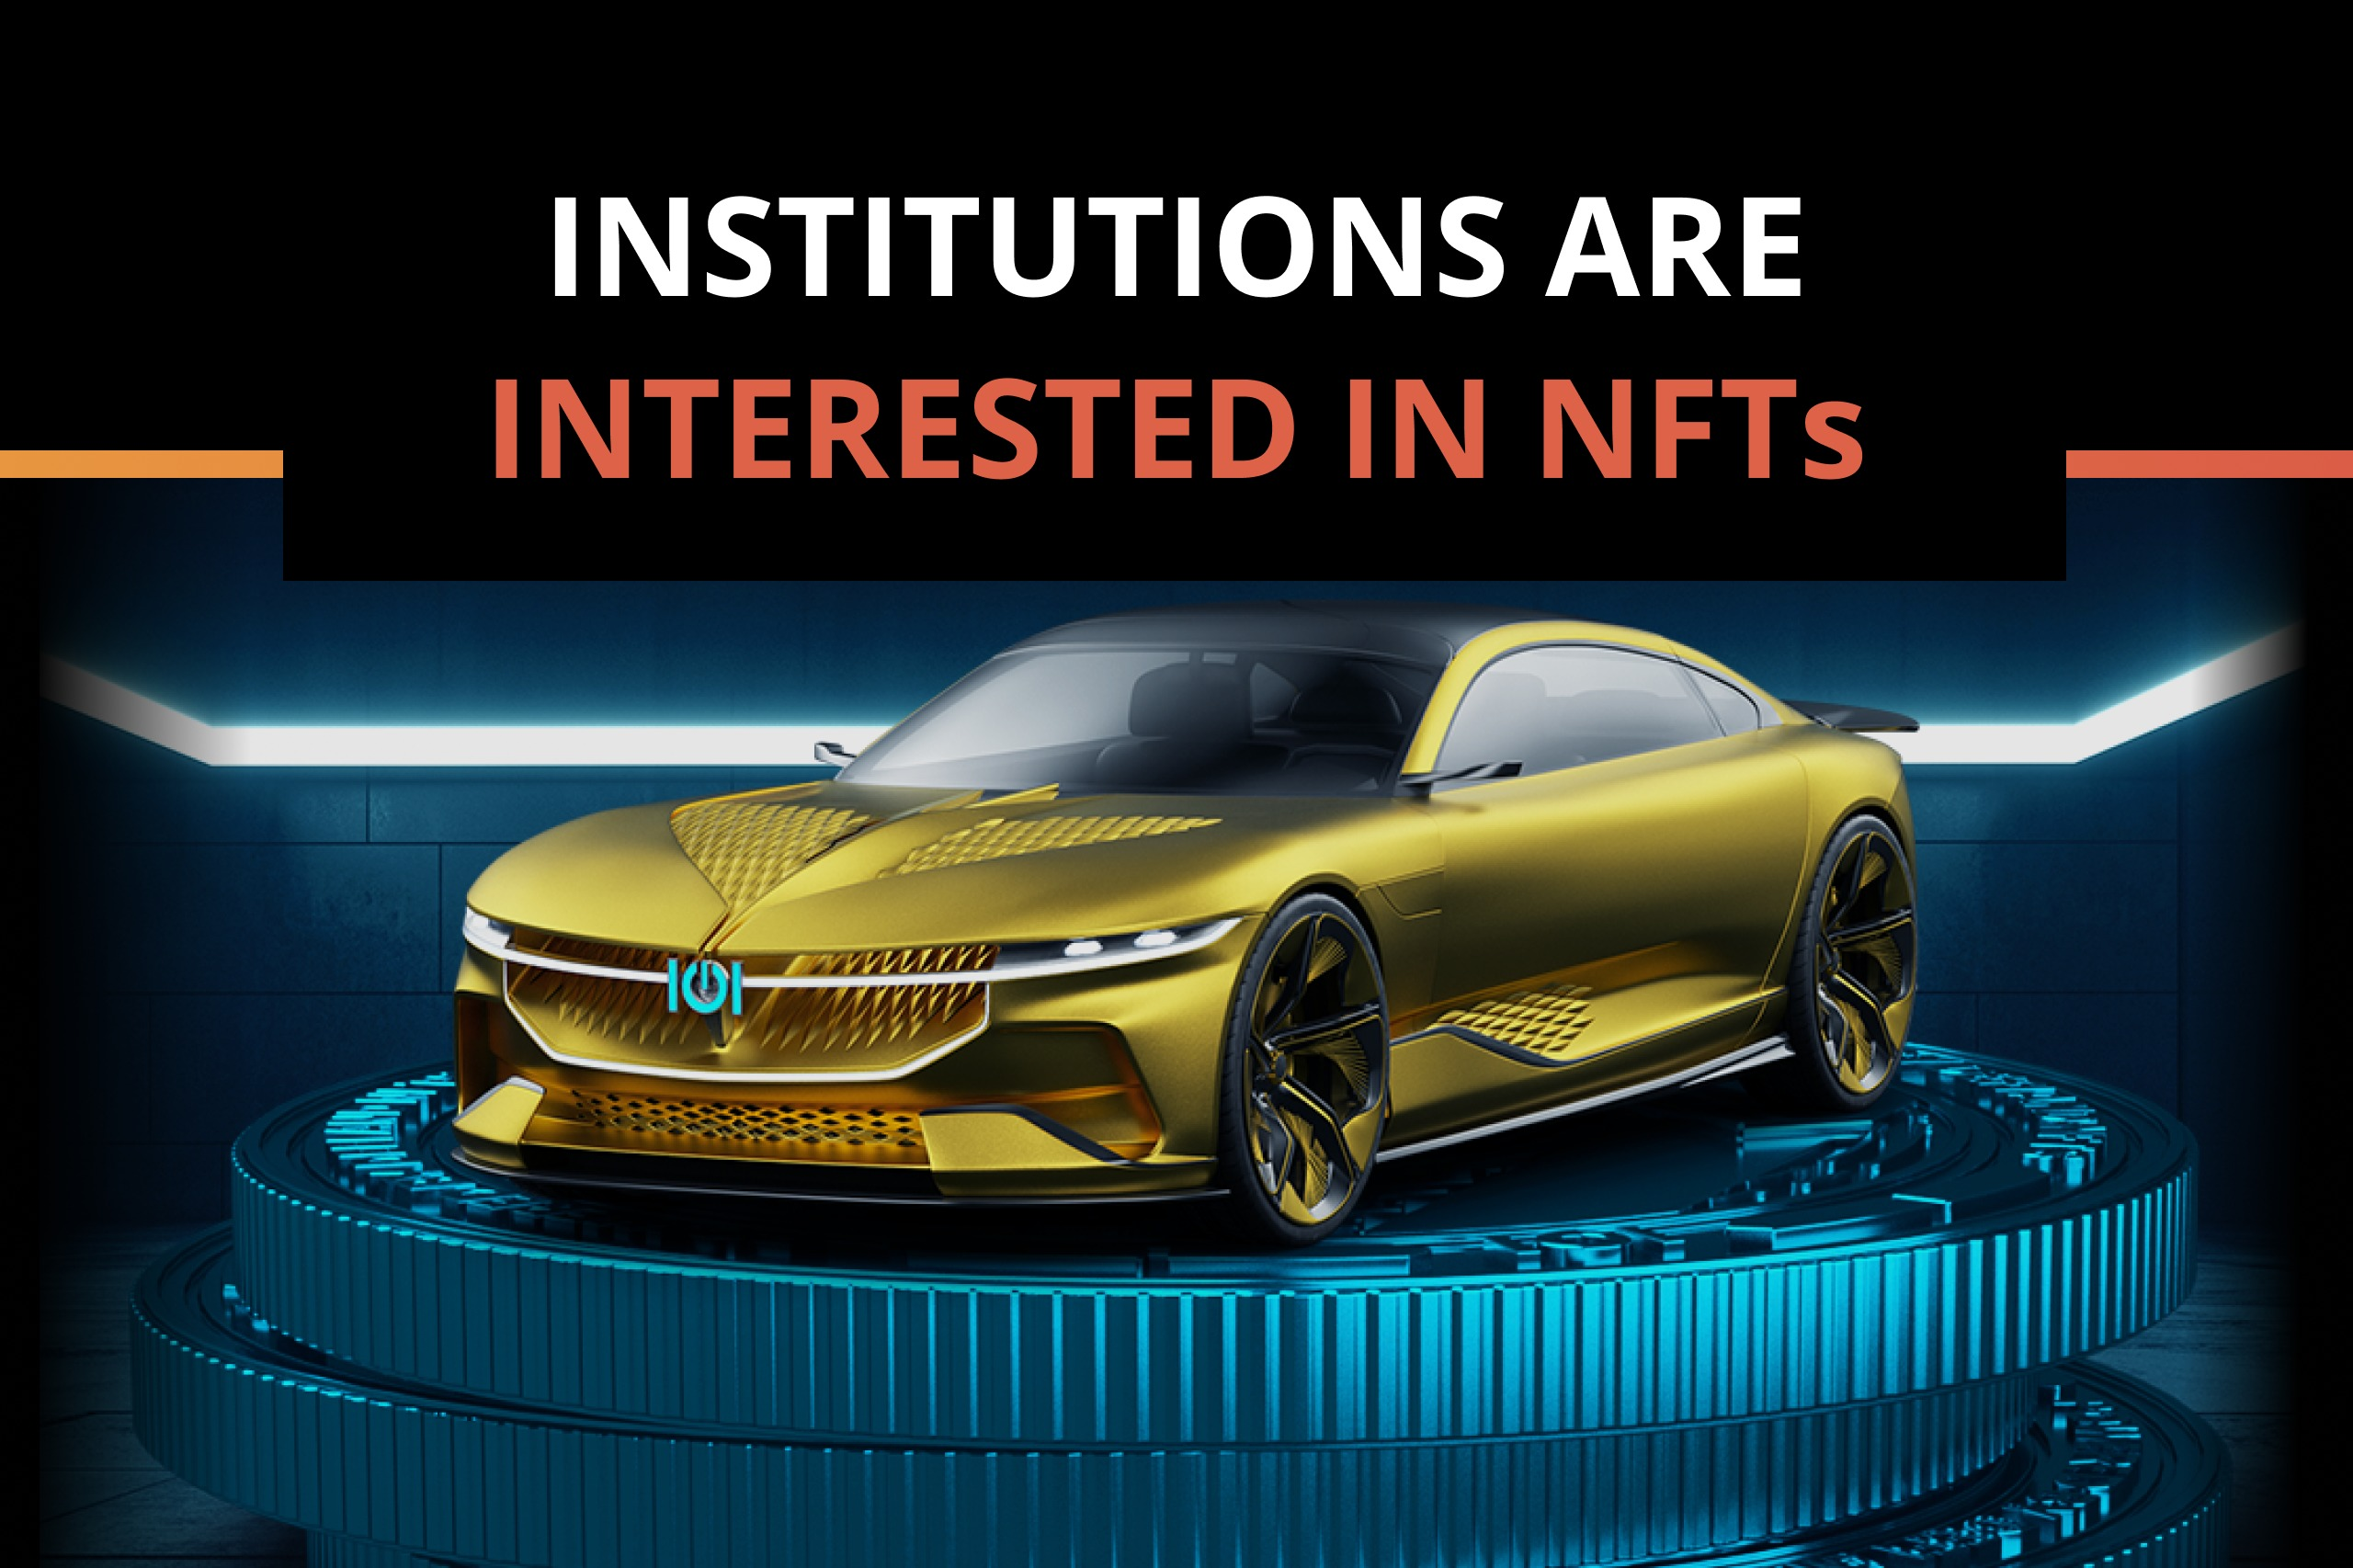 NFT Space is Exploding as Institutional Investors are Interested